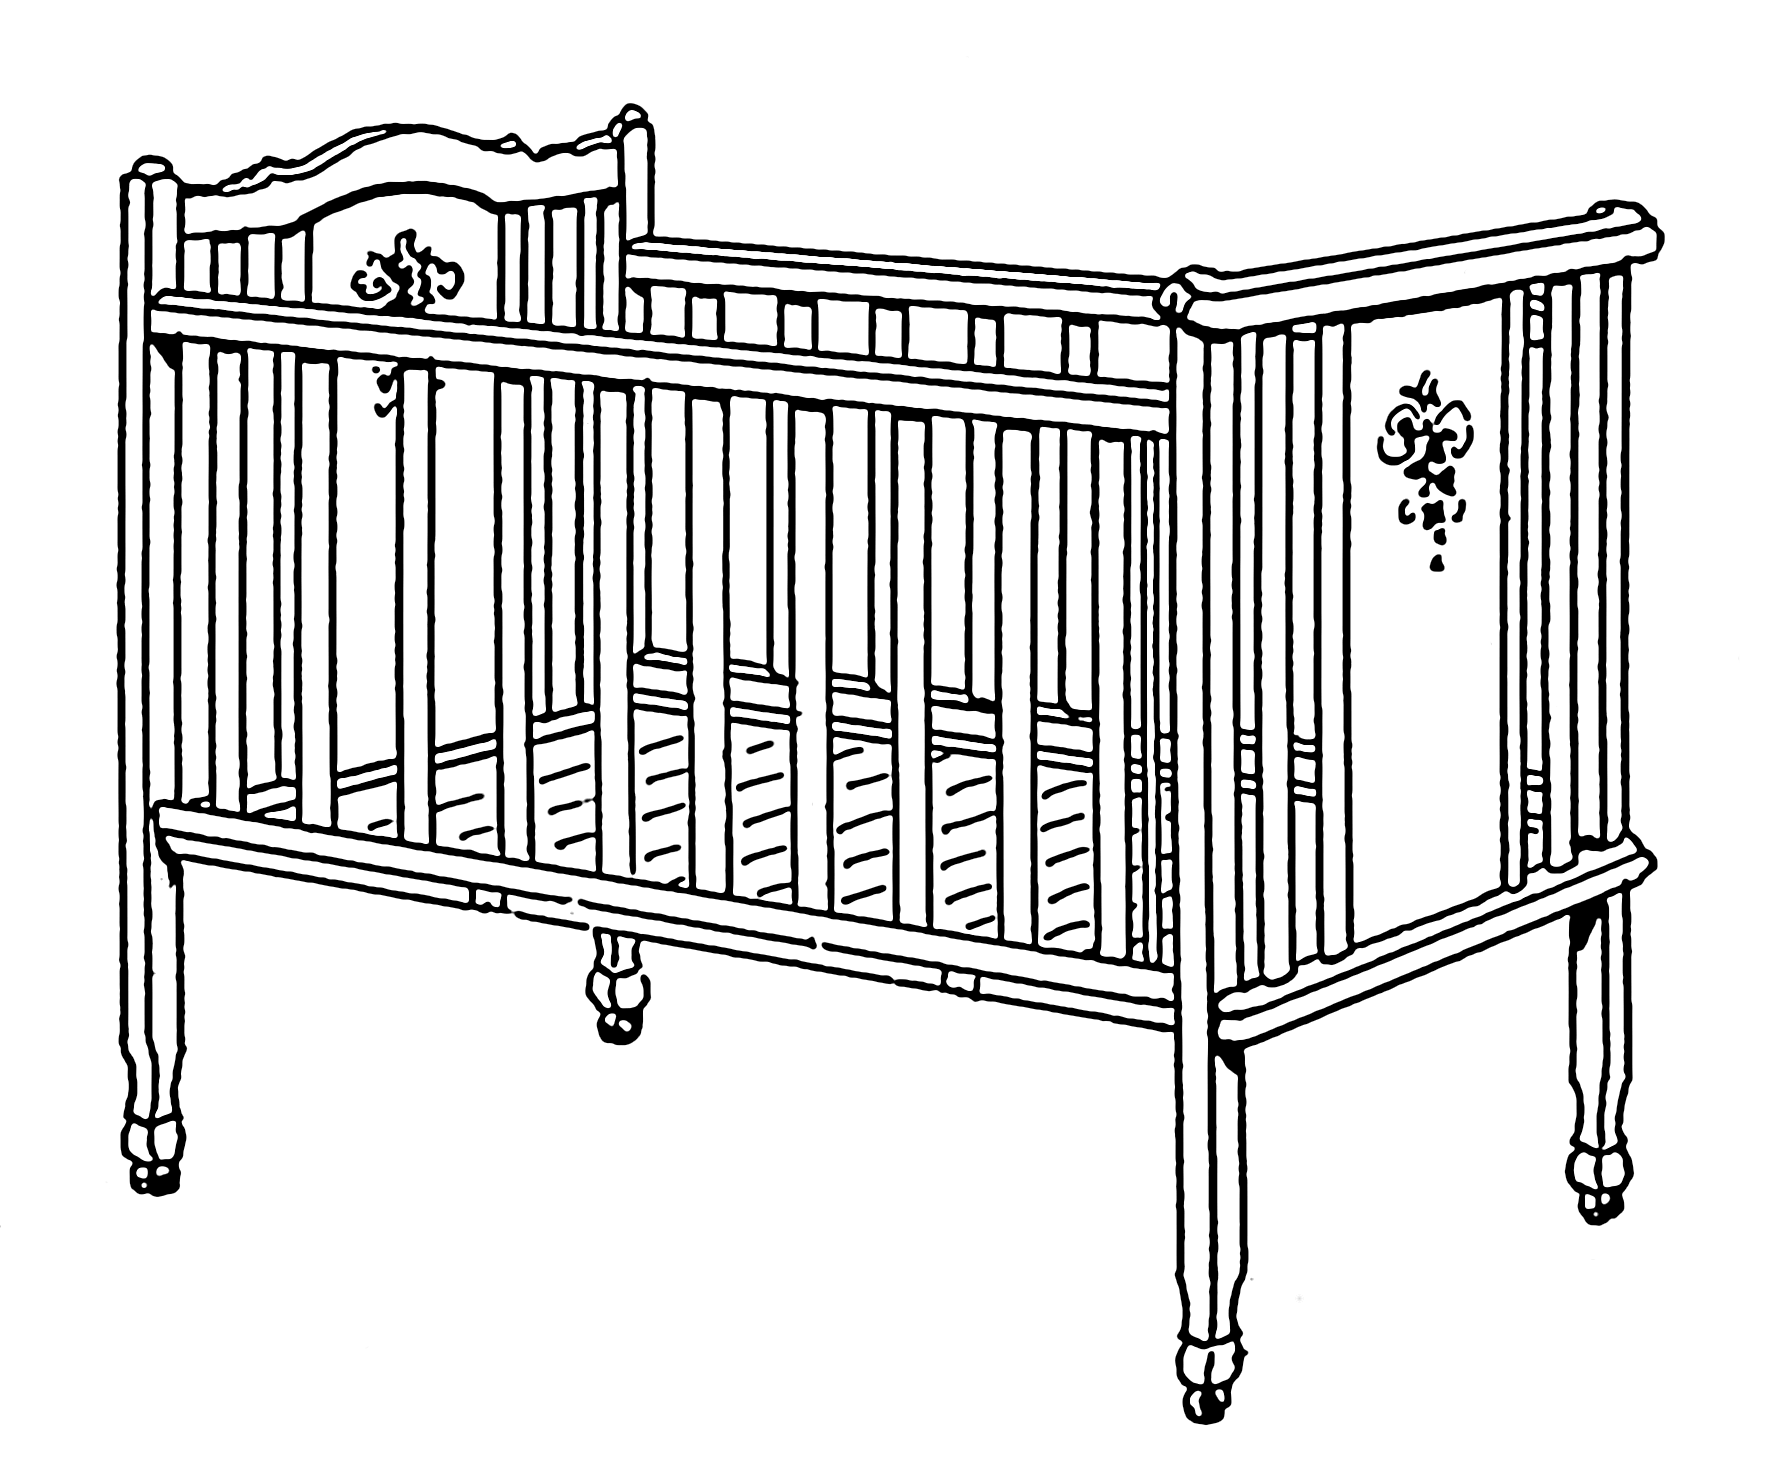 infant bed wikipedia. Black Bedroom Furniture Sets. Home Design Ideas